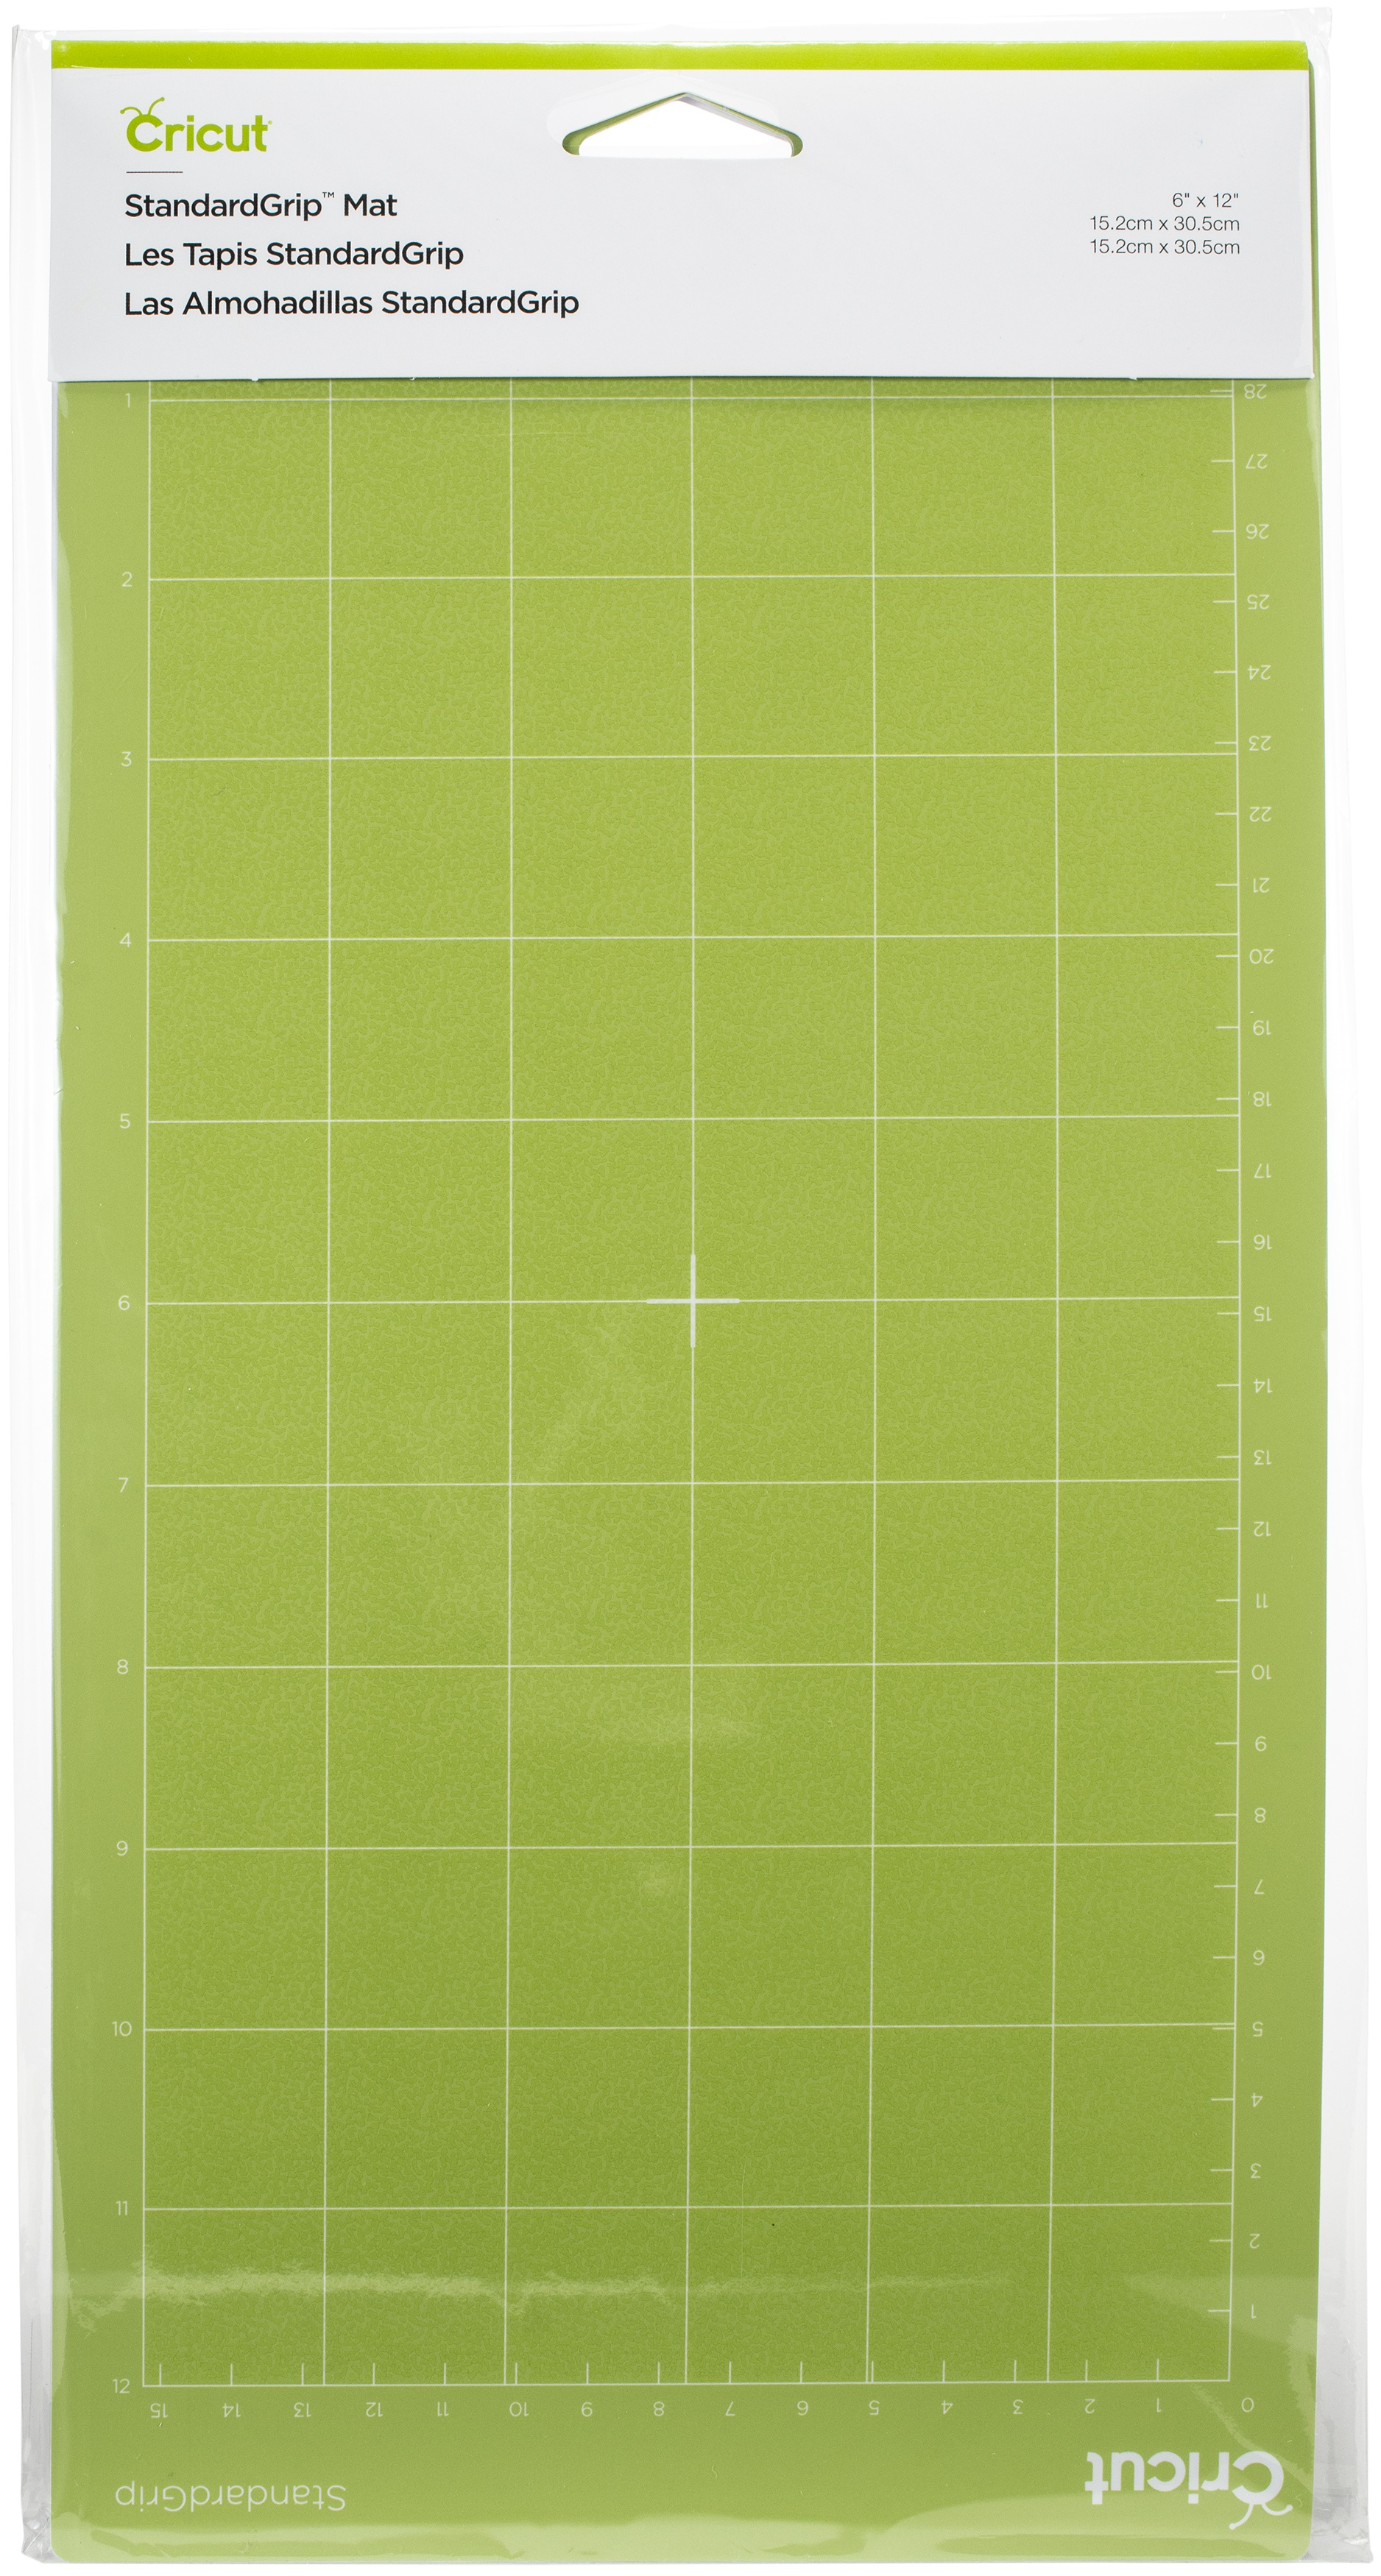 Cricut Cutting Mats 6X12 2/Pkg-StandardGrip